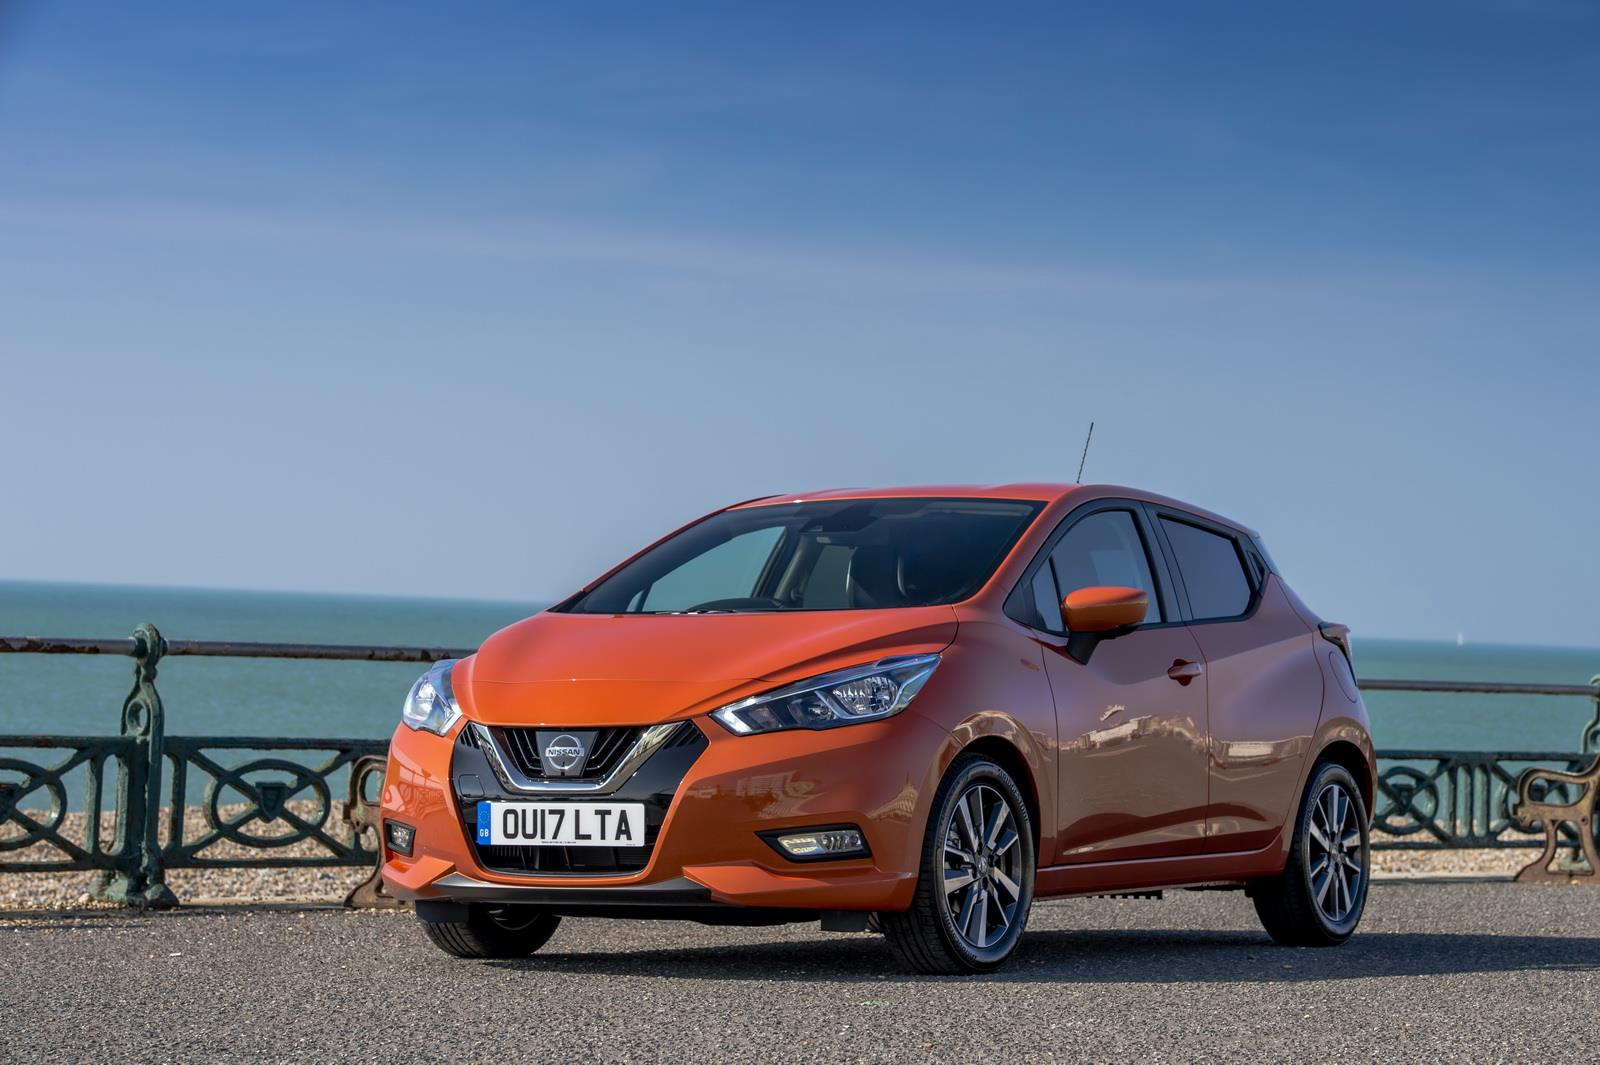 2017 Nissan Micra photo gallery